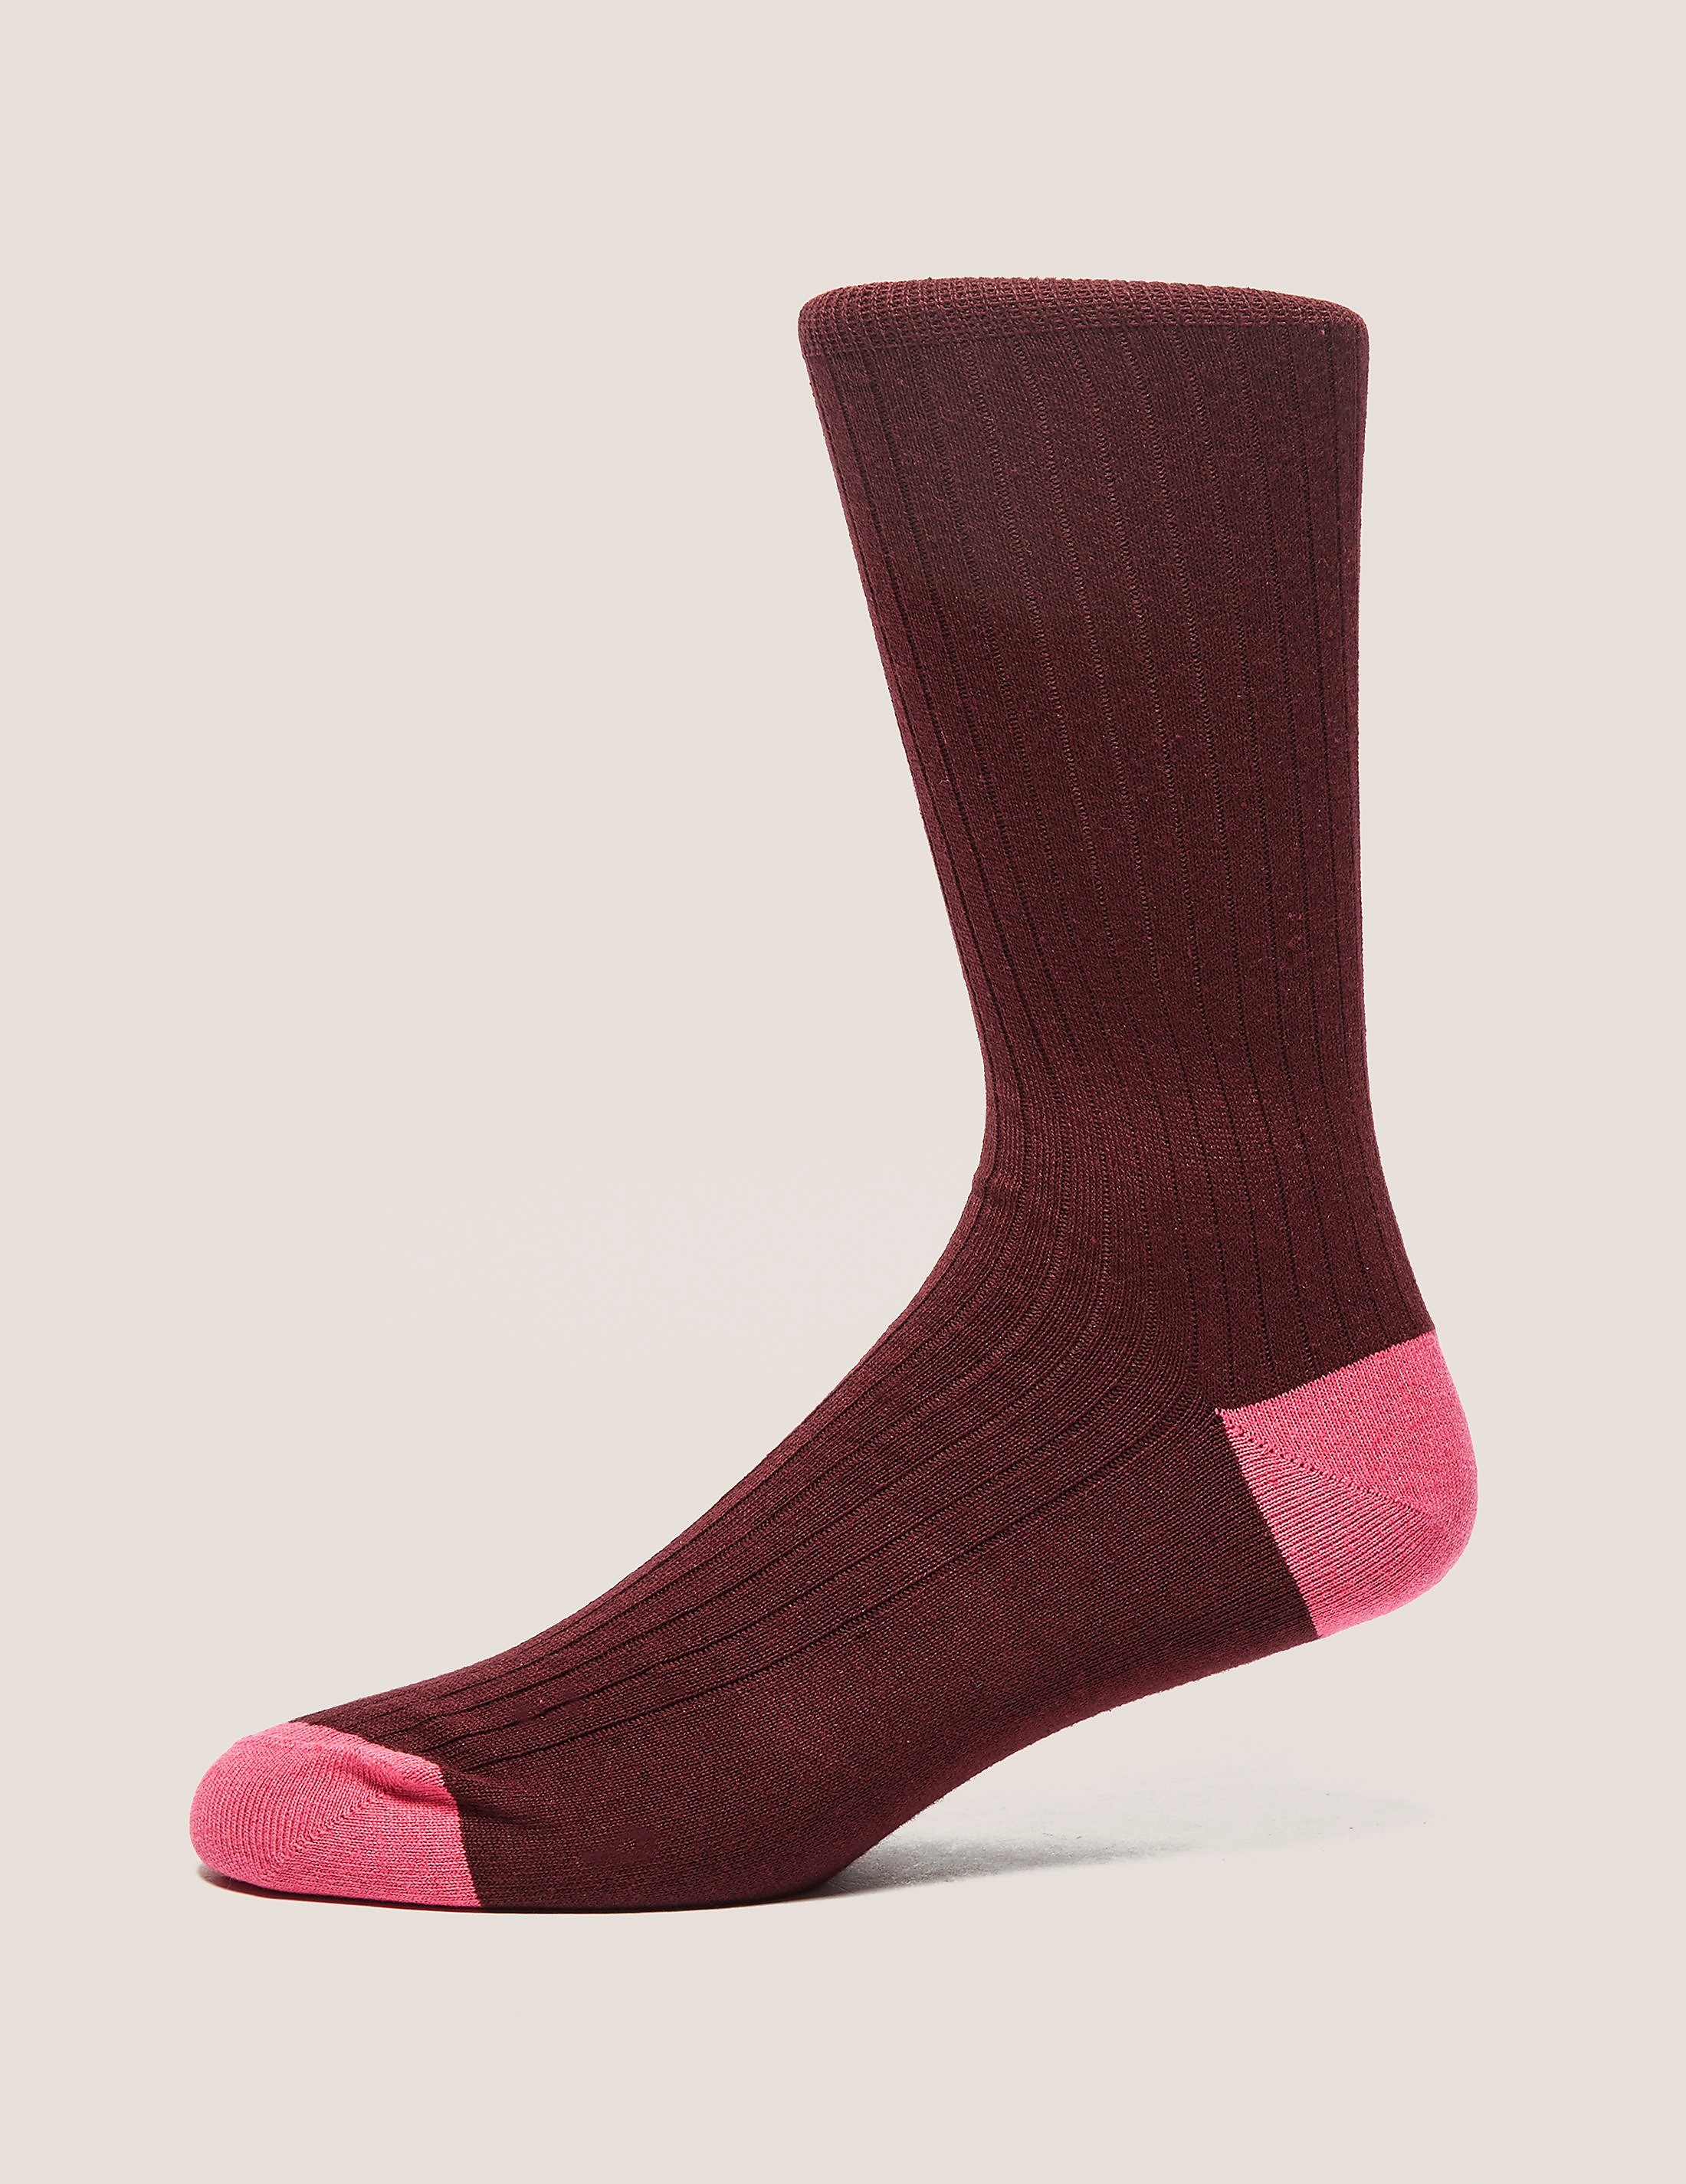 Paul Smith Two-Tone Ribbed Socks